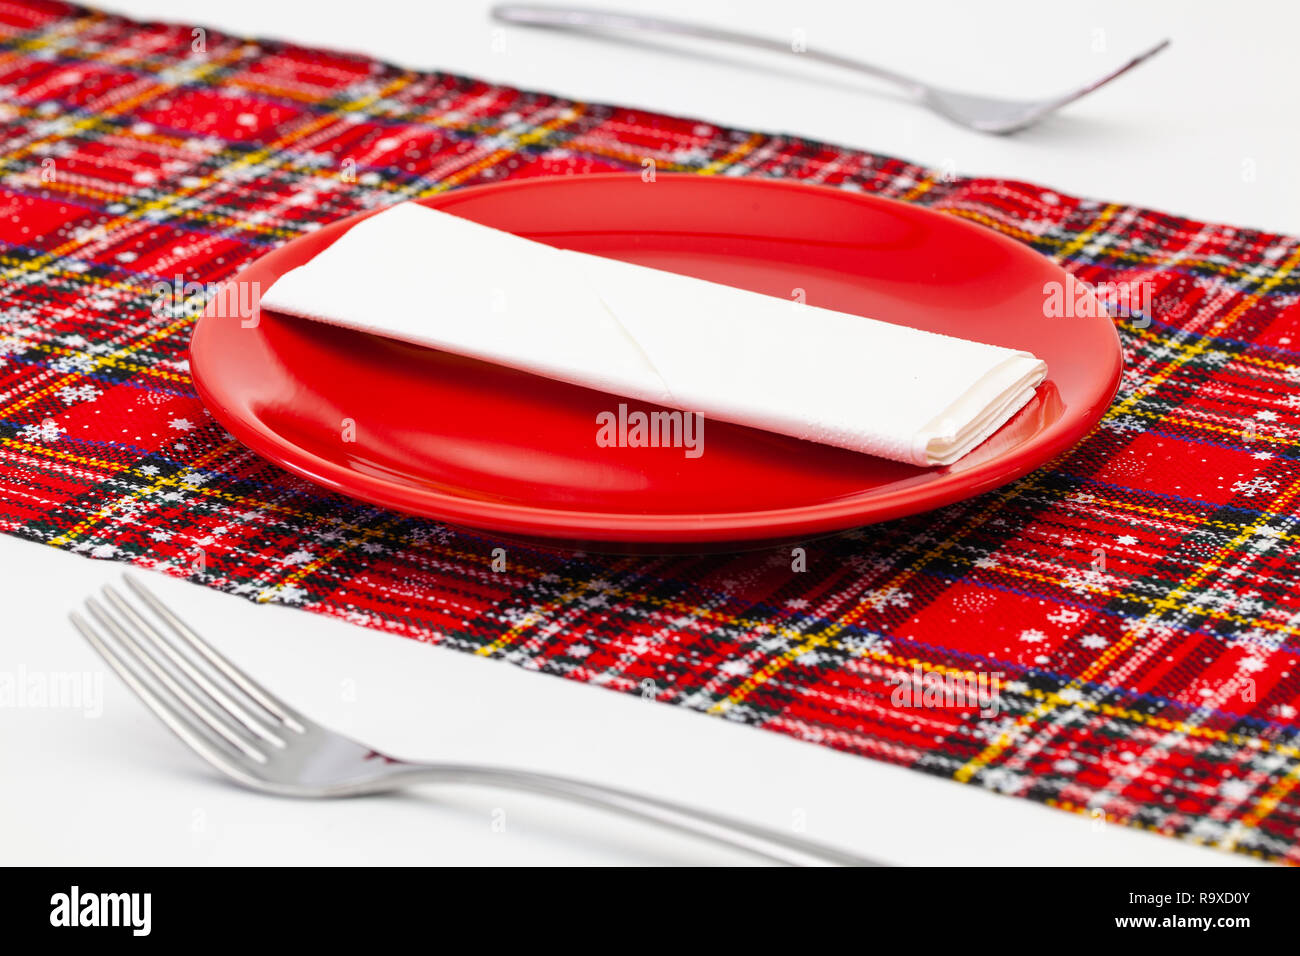 Wondrous Red Plate And Christmas Decoration On The White Wooden Table Download Free Architecture Designs Grimeyleaguecom